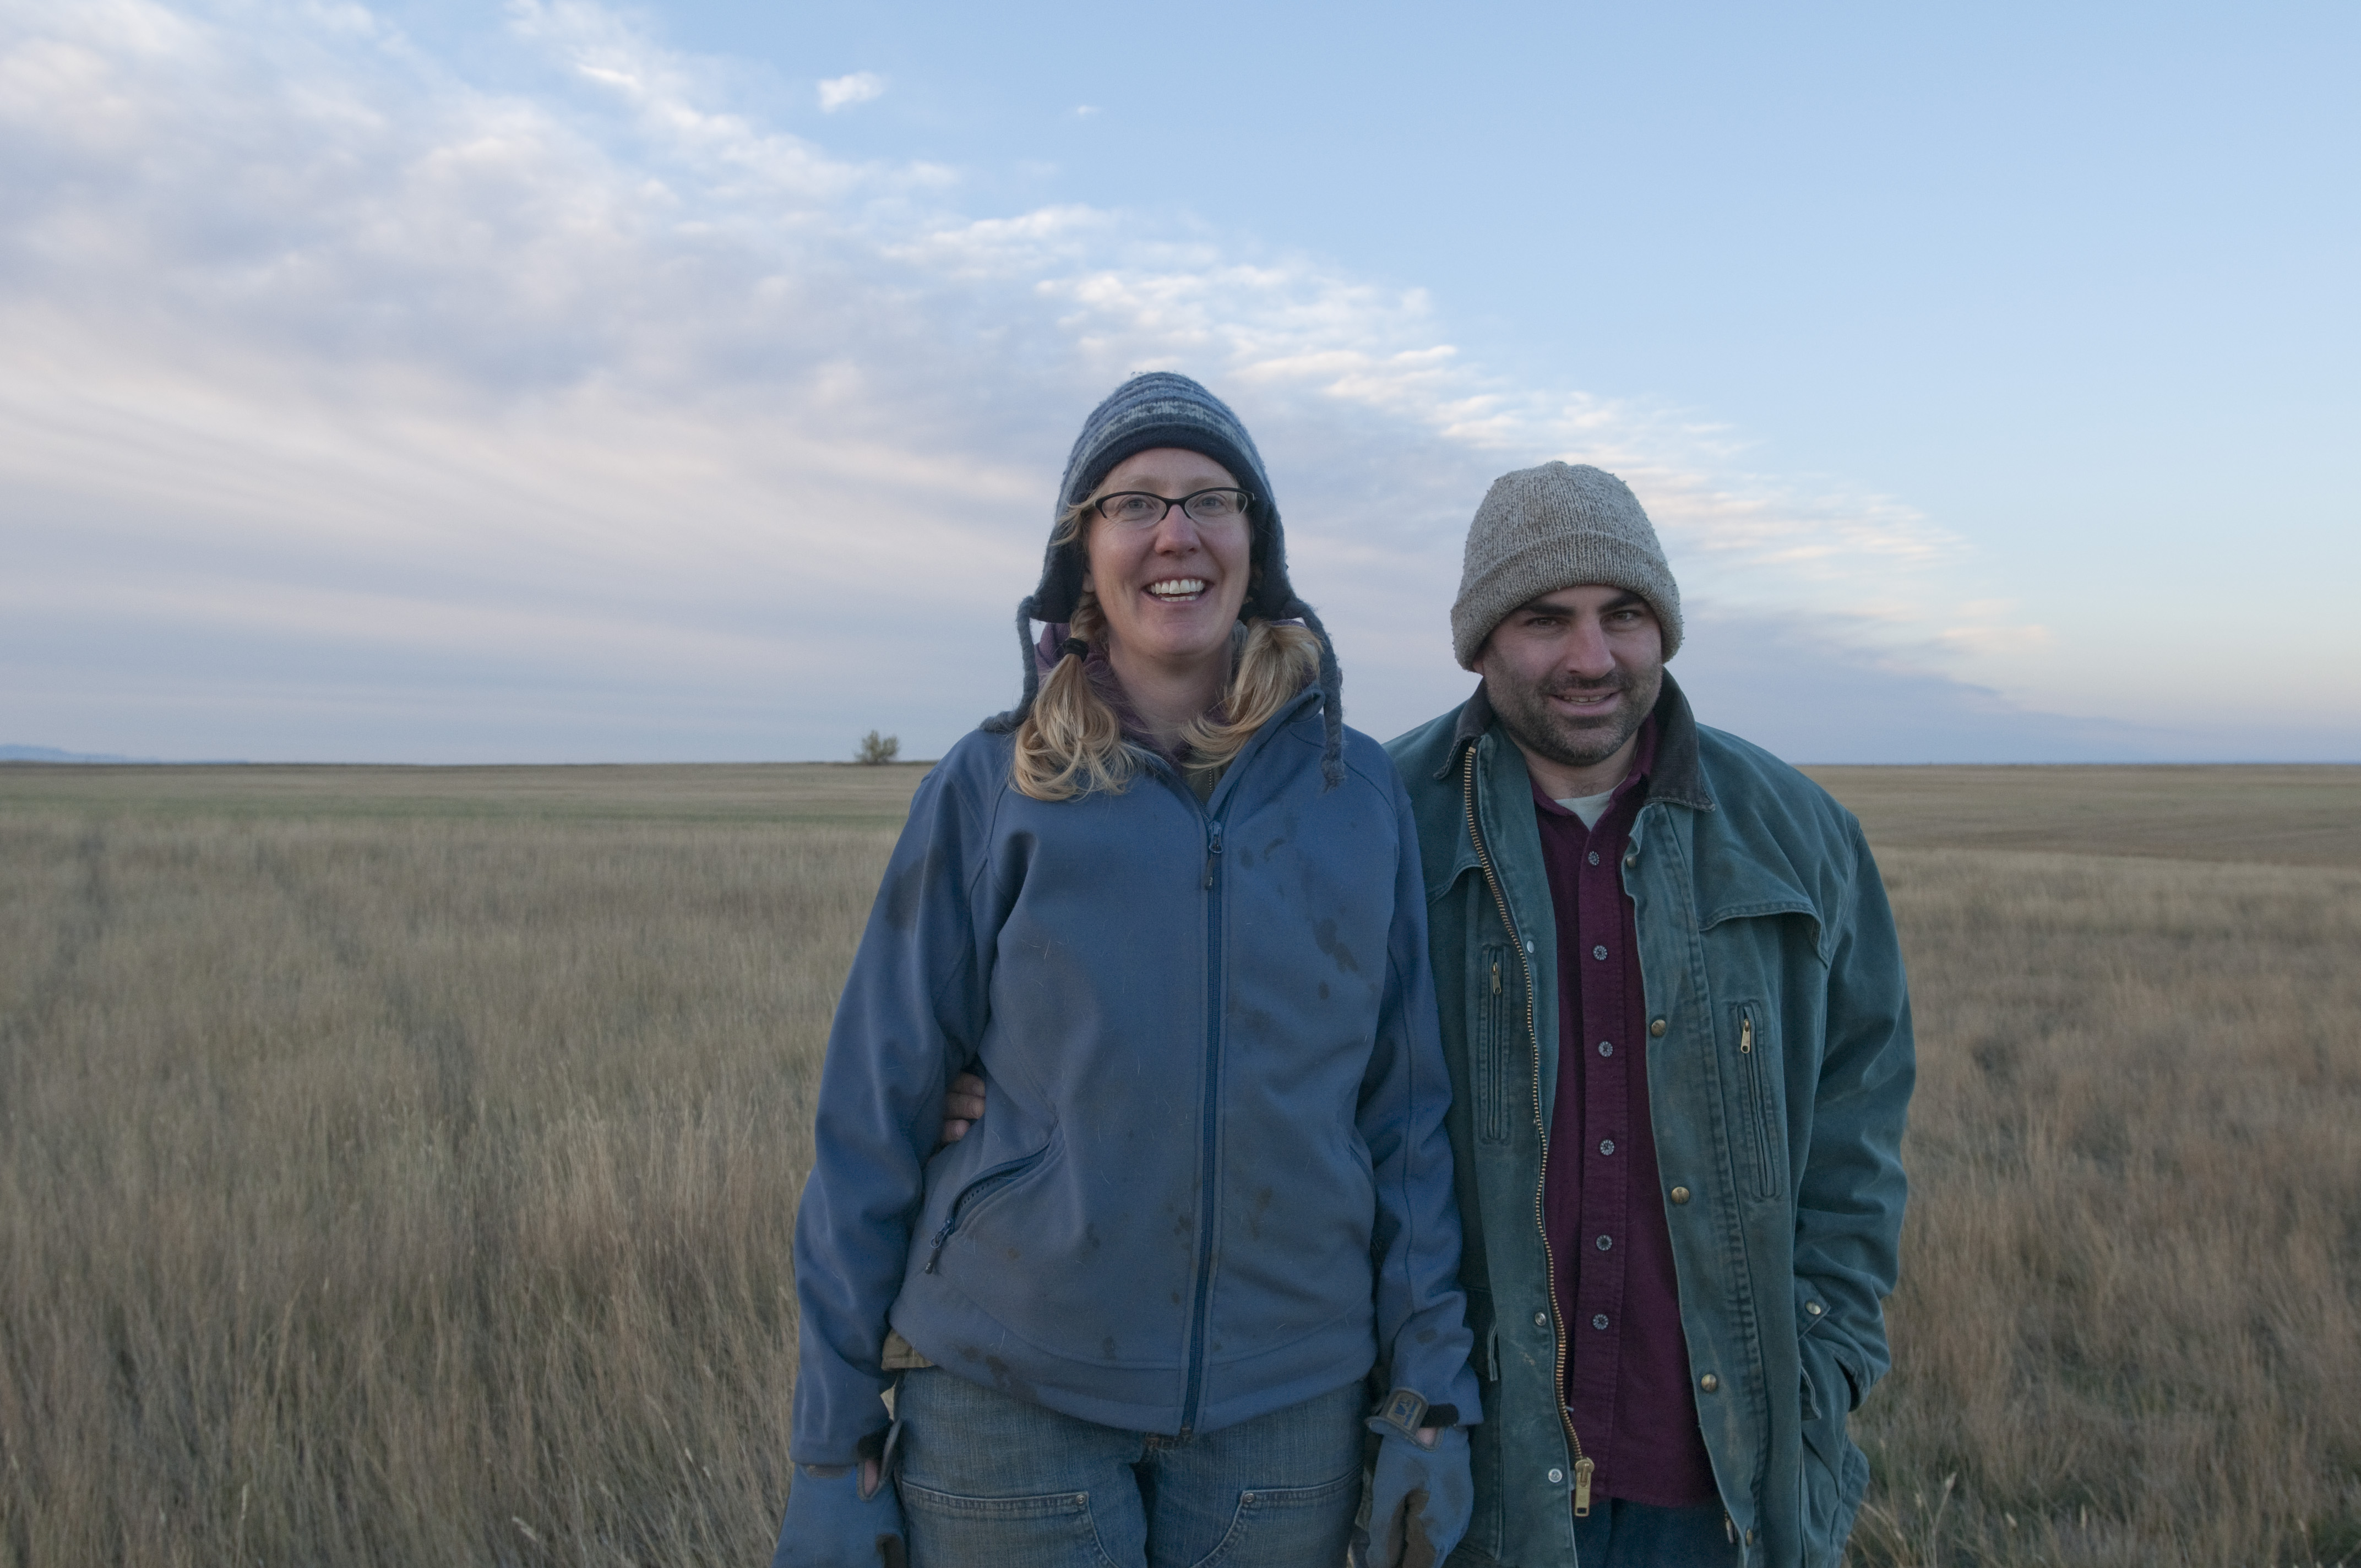 Showing Up With Your Heart: A Montana Couple Leaves White Collar Careers to Farm on the Great Plains